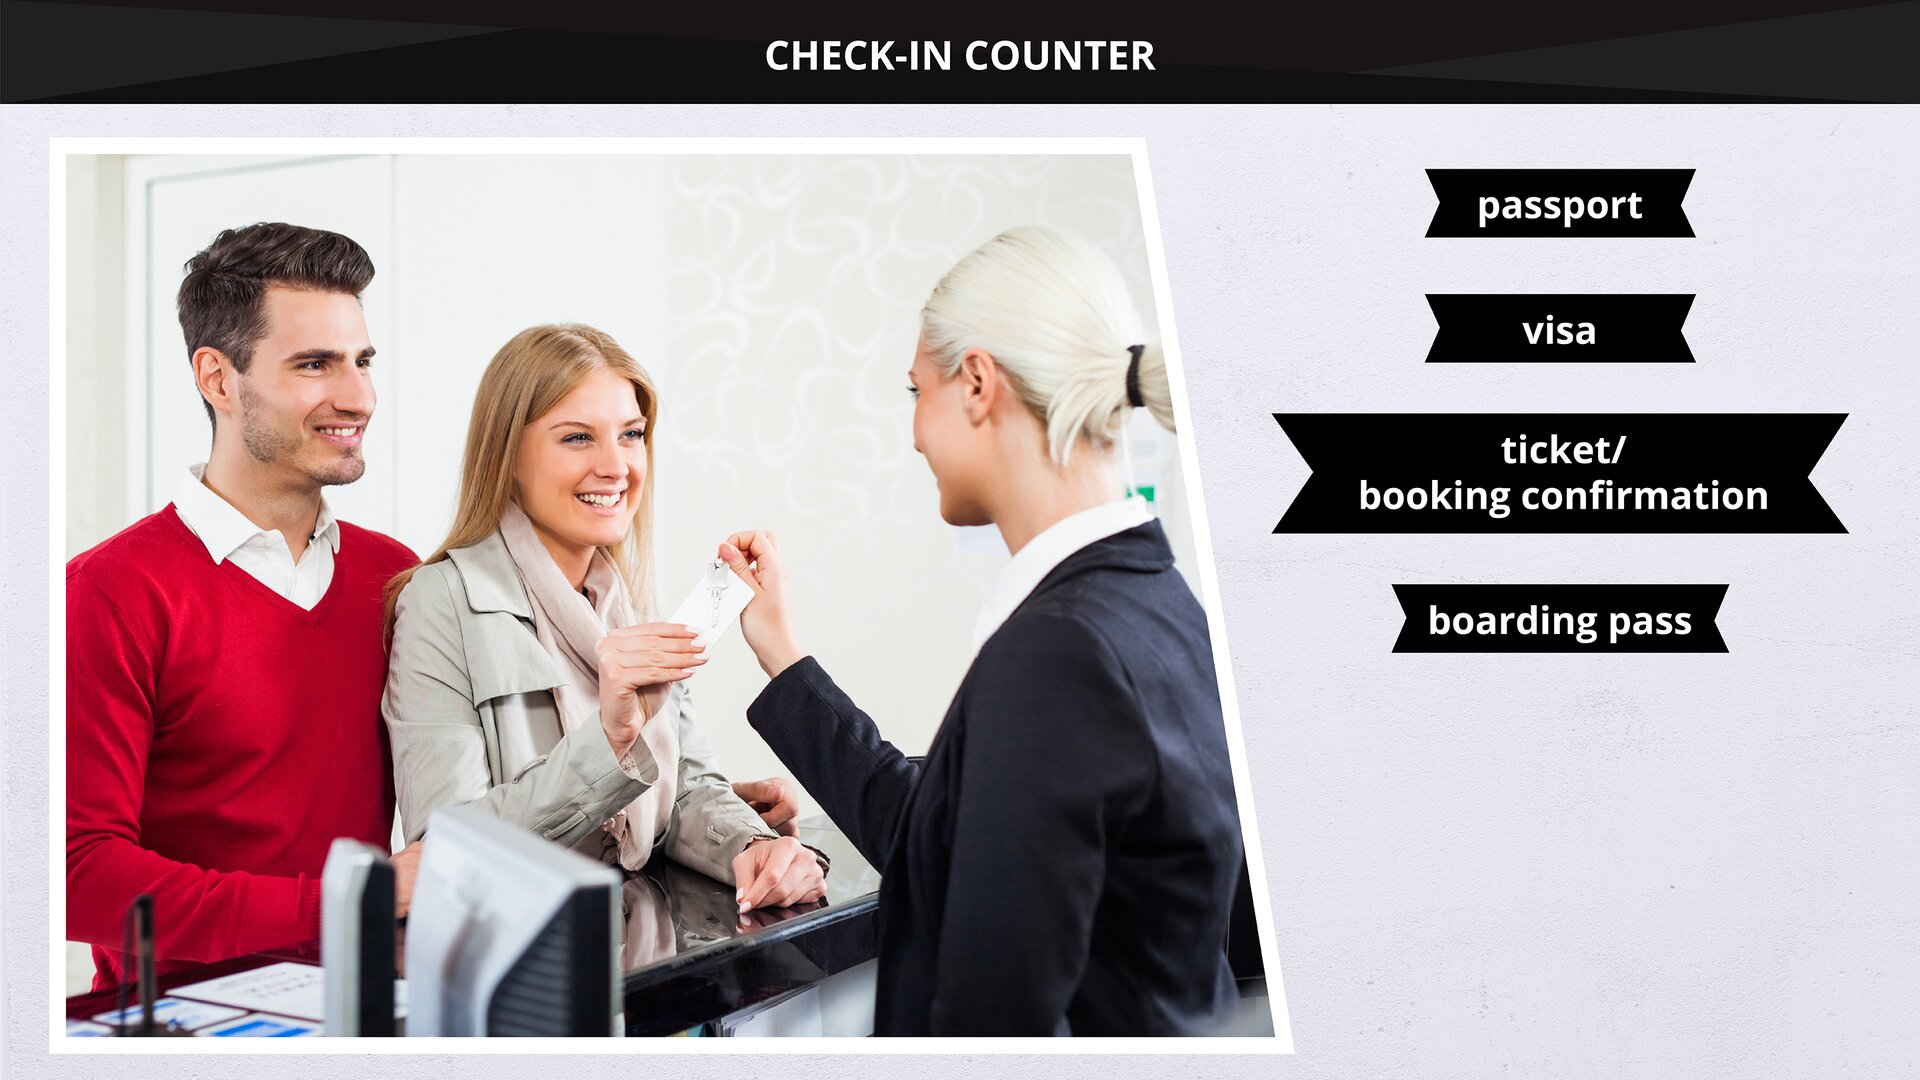 The image presents people at acheck-in counter. Grafika przedstawia osoby przy stanowisku check-in.